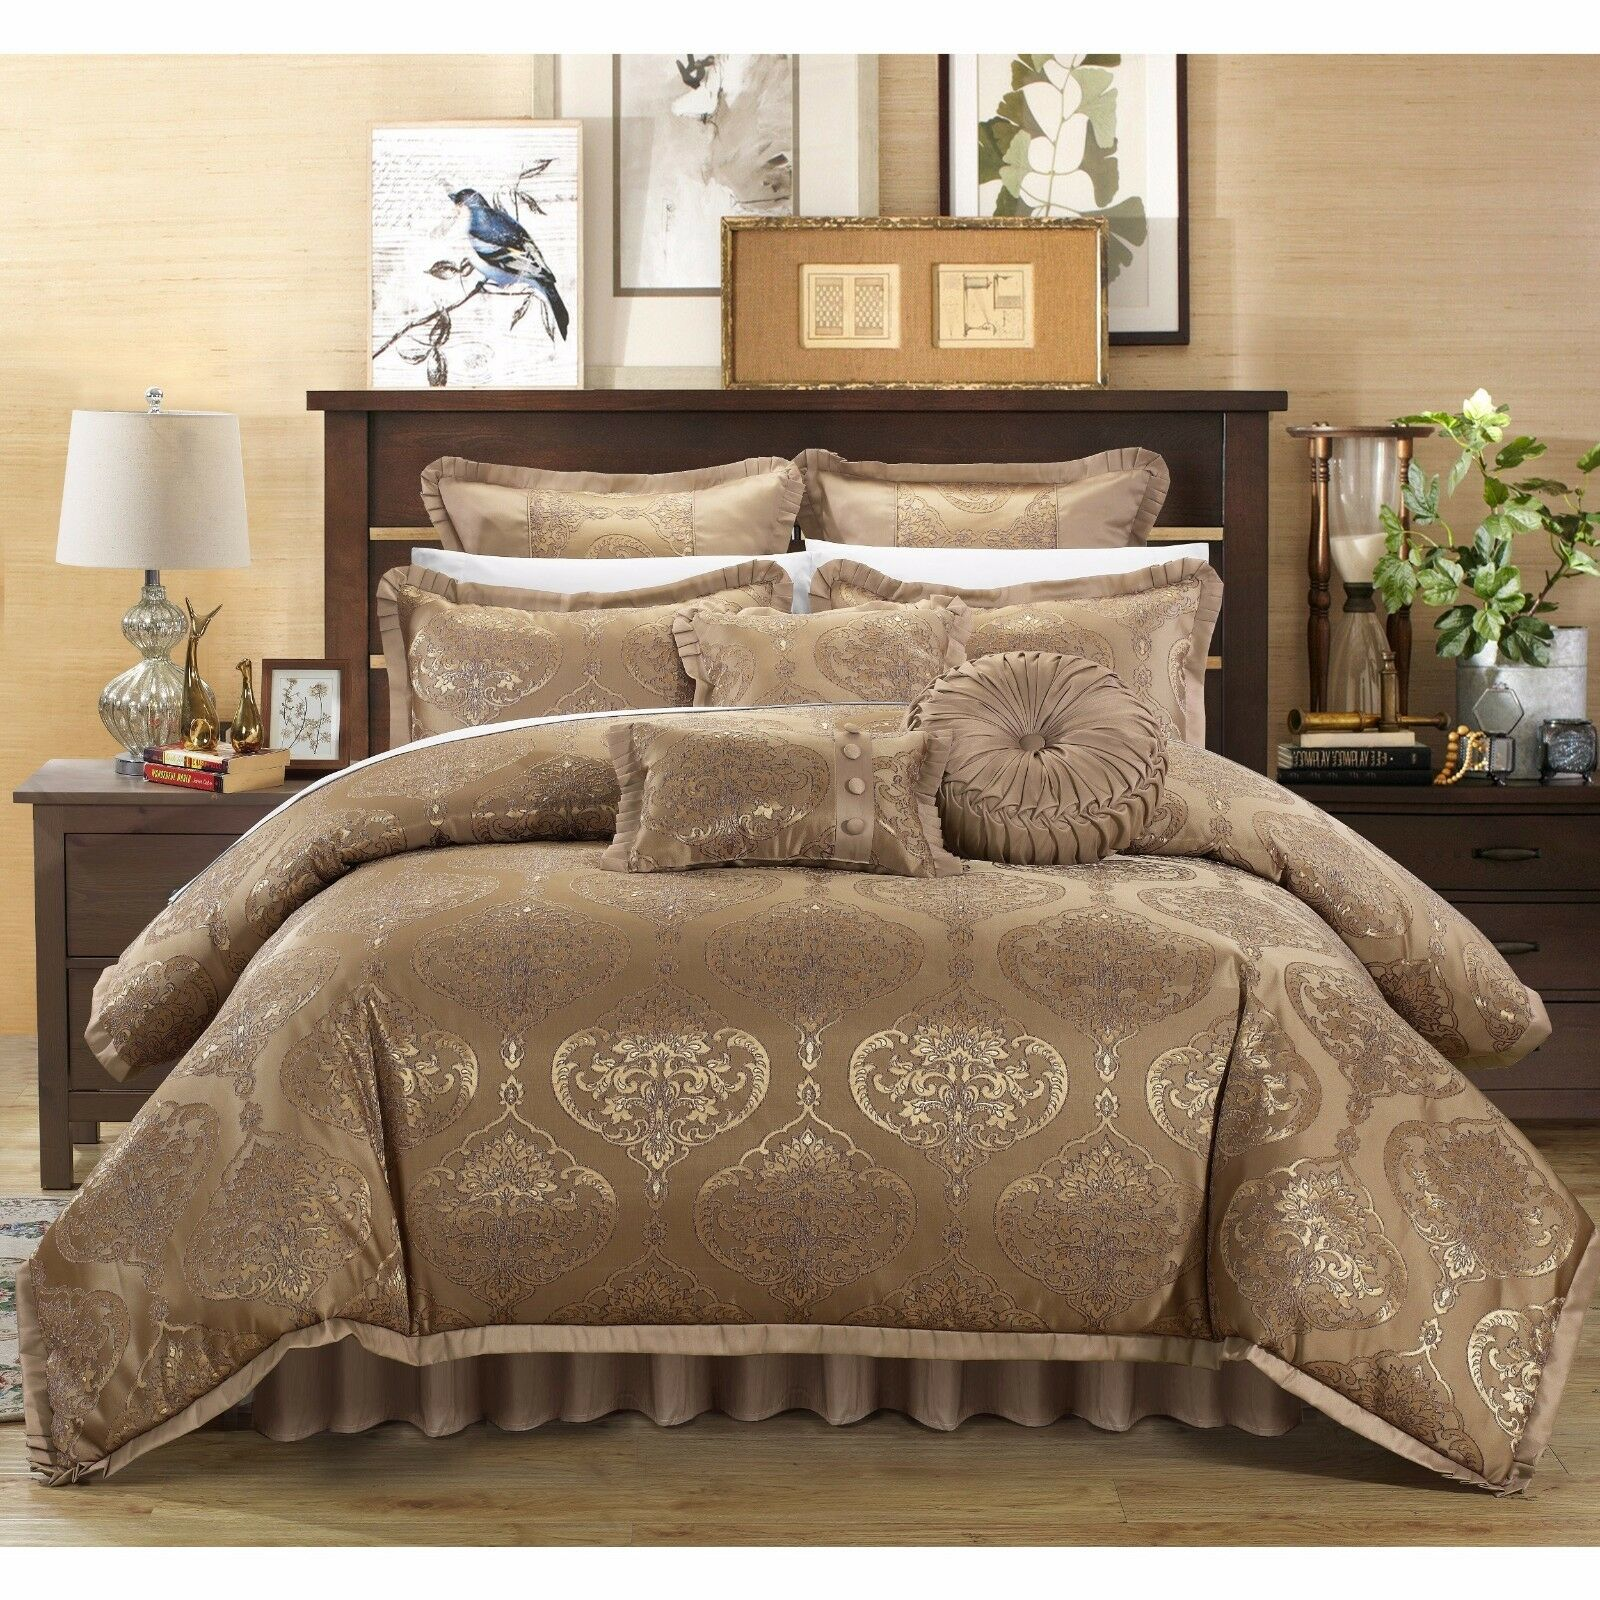 JACQUARD 9 PIECE COMFORTER SET   BED IN A BAG - King   Queen